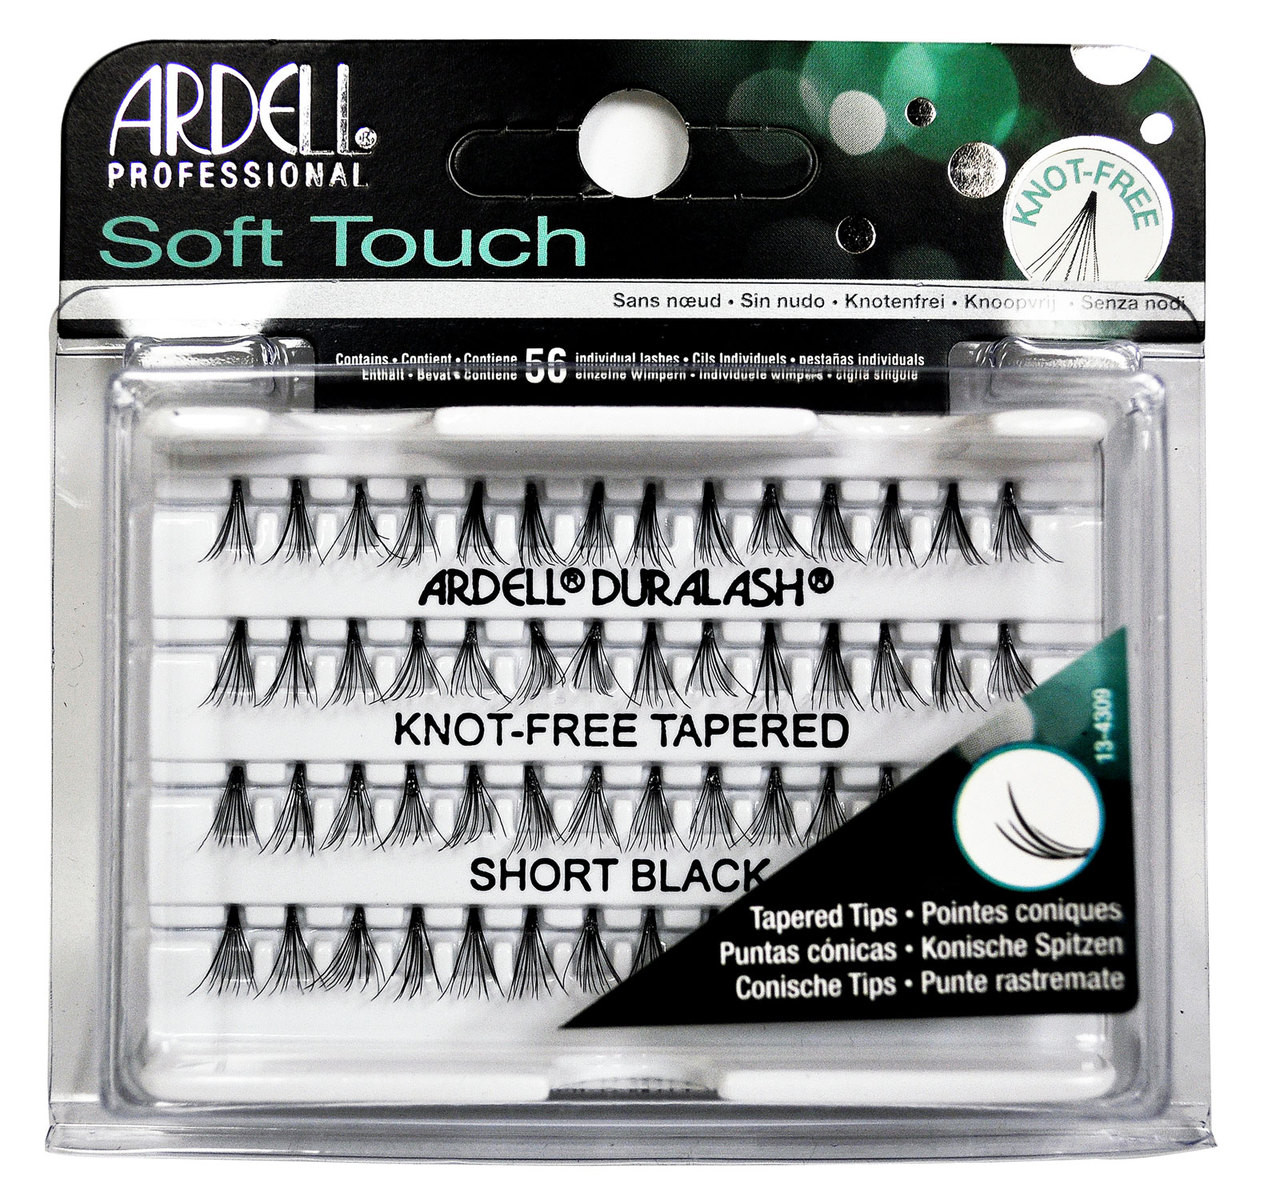 Ardell Soft Touch Knot-Free Tapered Short Black